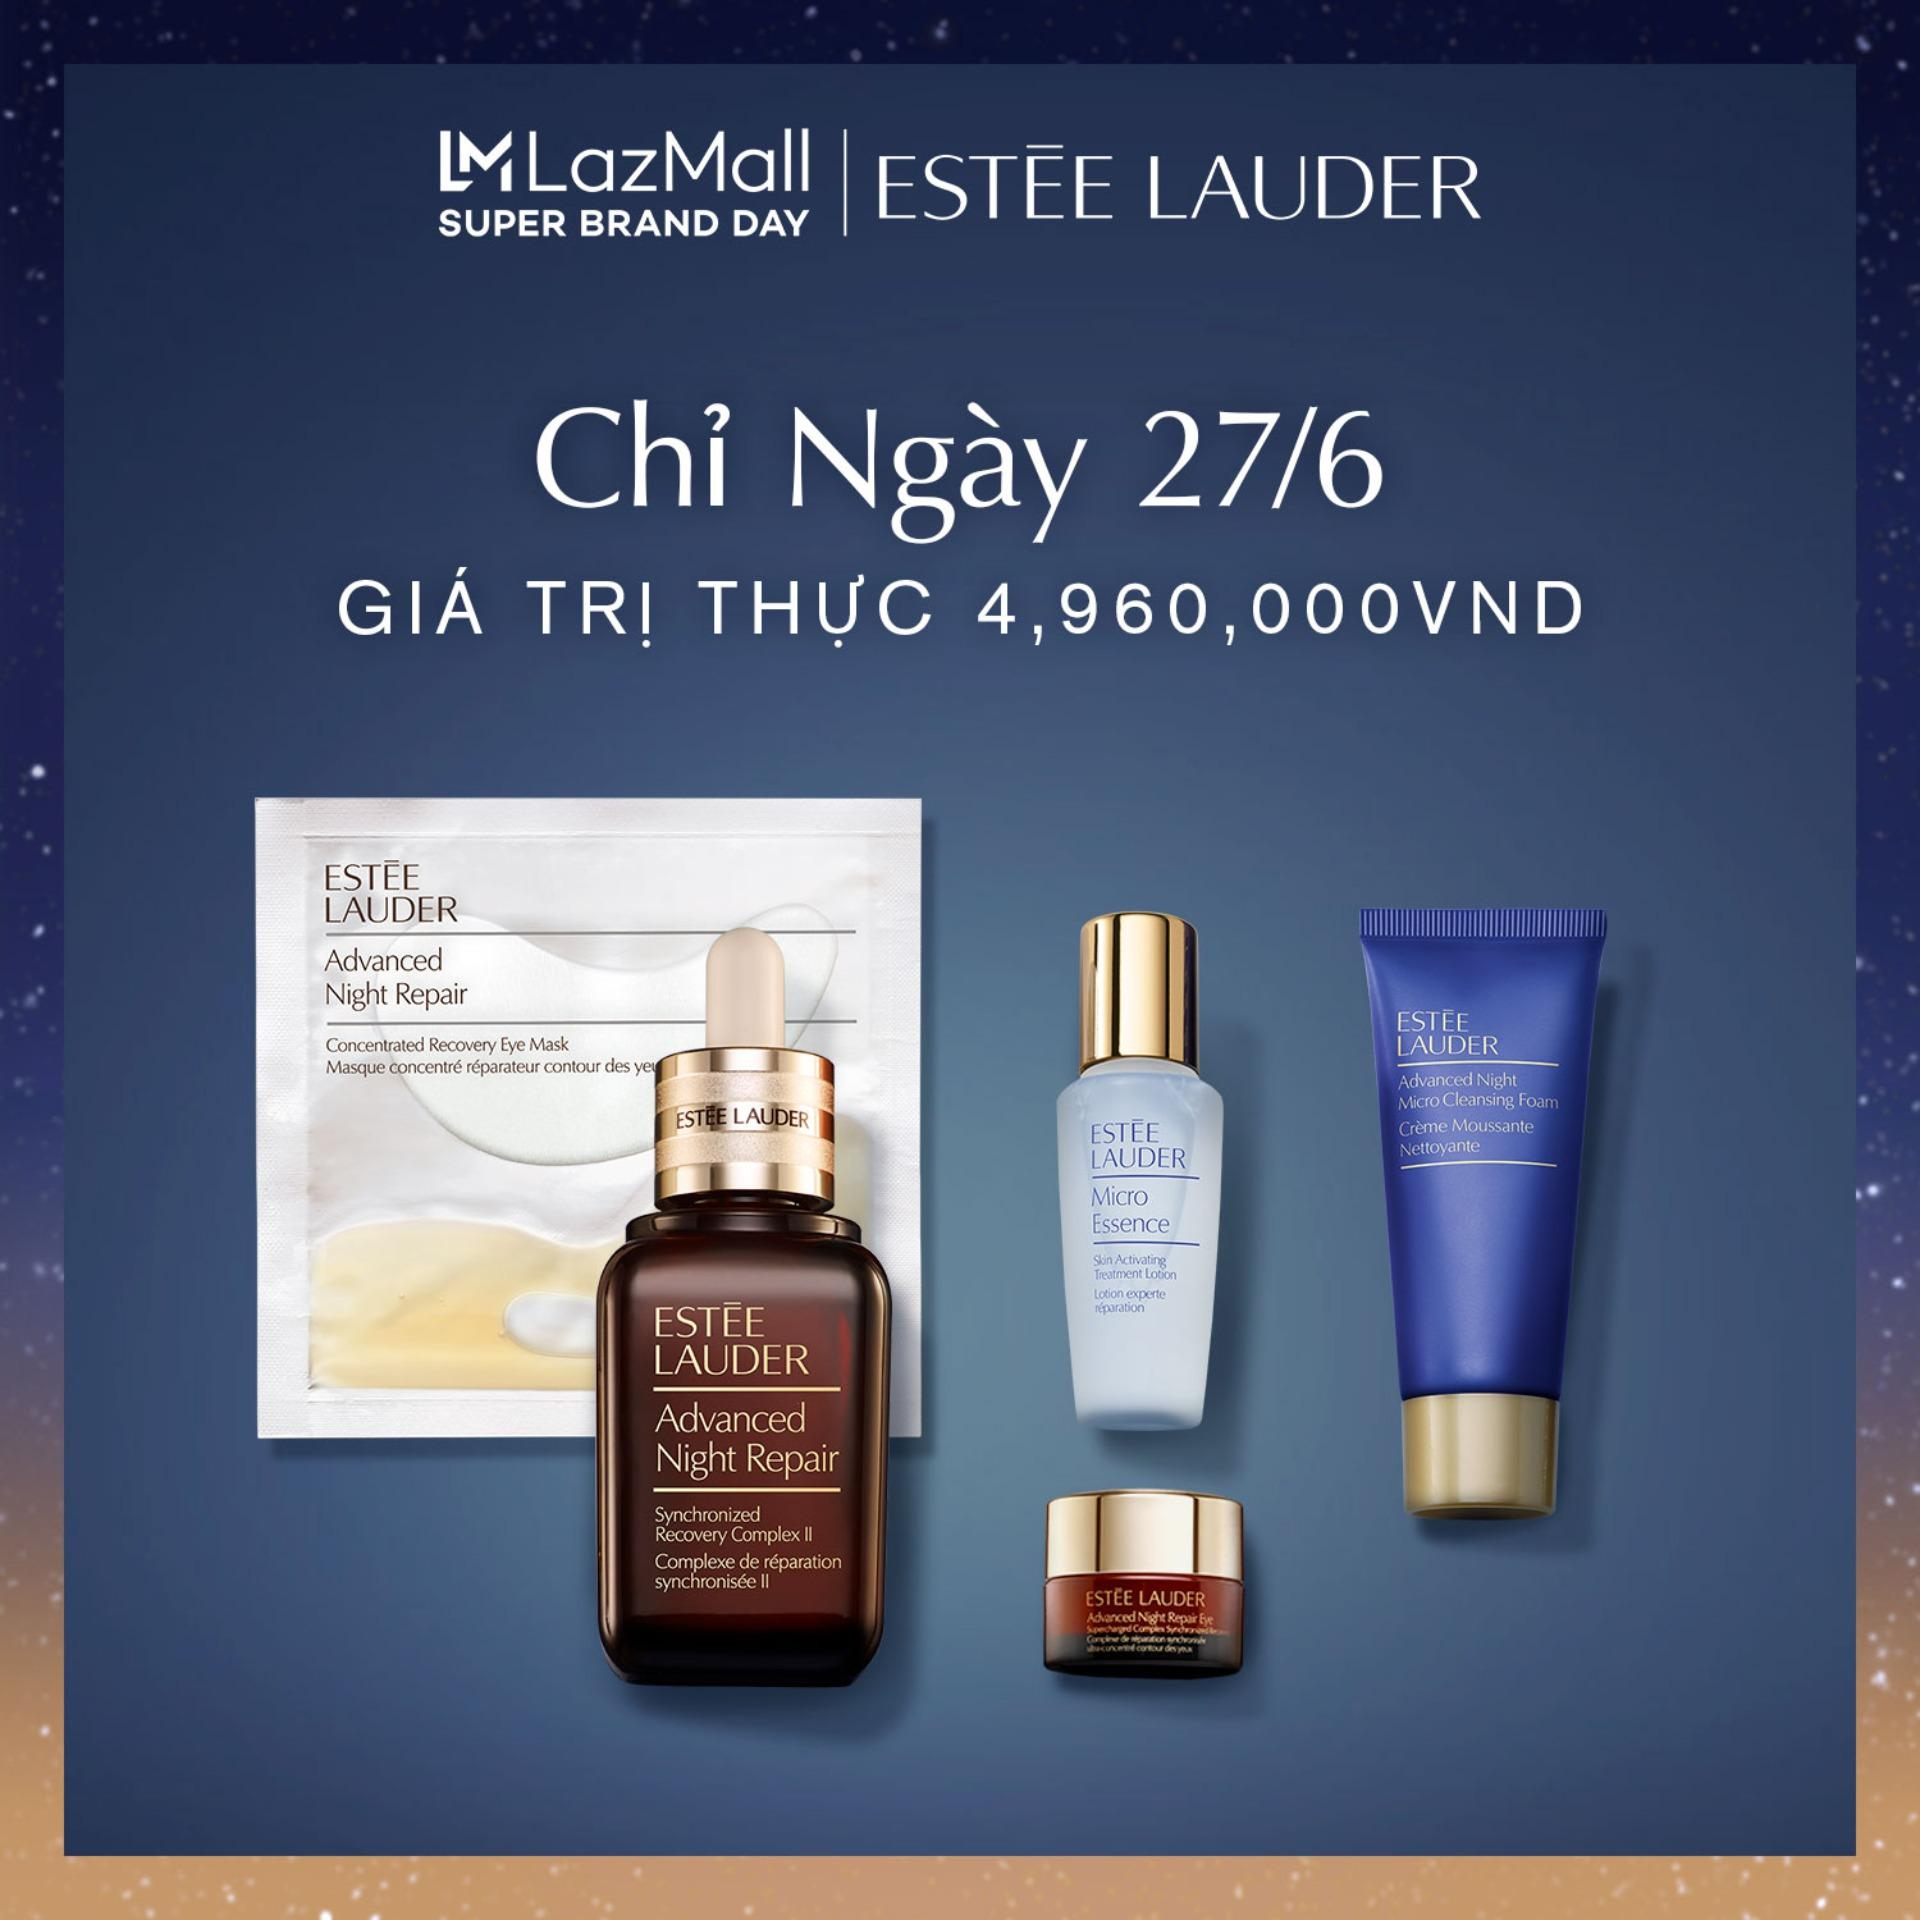 Bộ Dưỡng Da Làm Sạch + Phục Hồi Ban Đêm Night In + Purify Tinh chất phục hồi da Estee Lauder Advanced Night Repair Synchronized Recovery Complex II 50ml